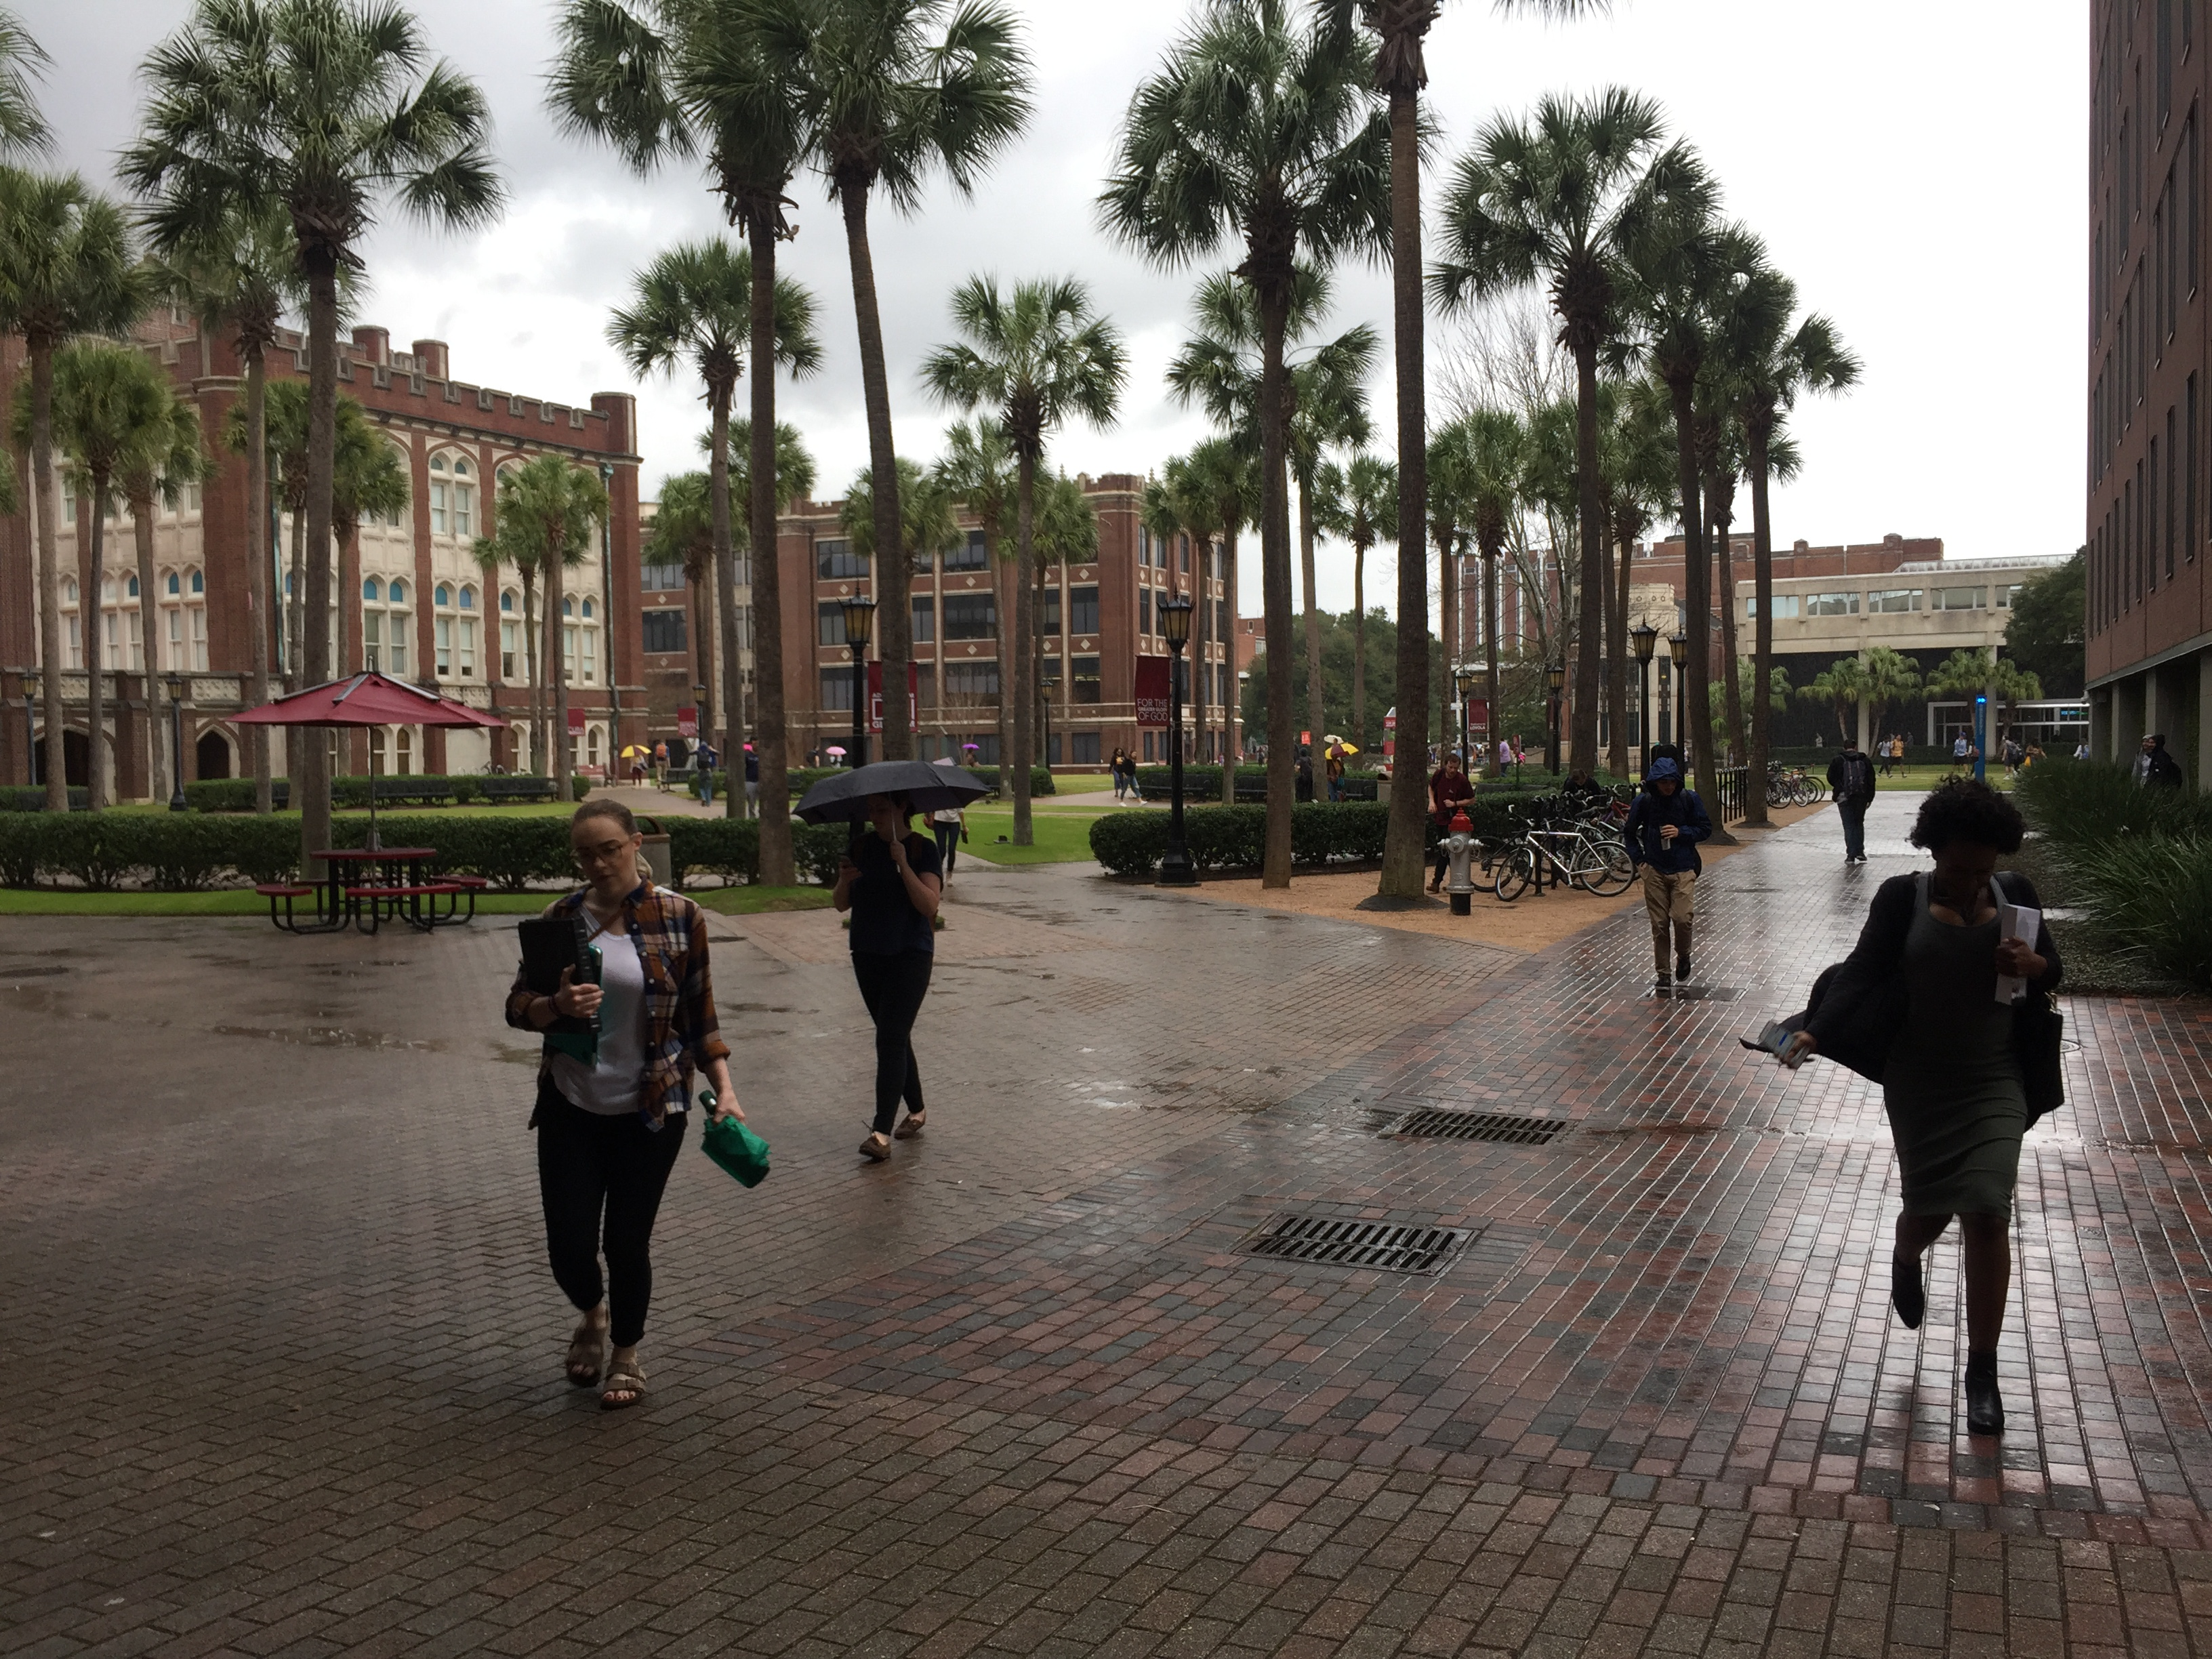 Students hurry to class in the rain at Loyola University New Orleans. This time of year is especially gloomy for those who experience seasonal depression. Jan. 19, 2017. Photo credit: Haley Pegg